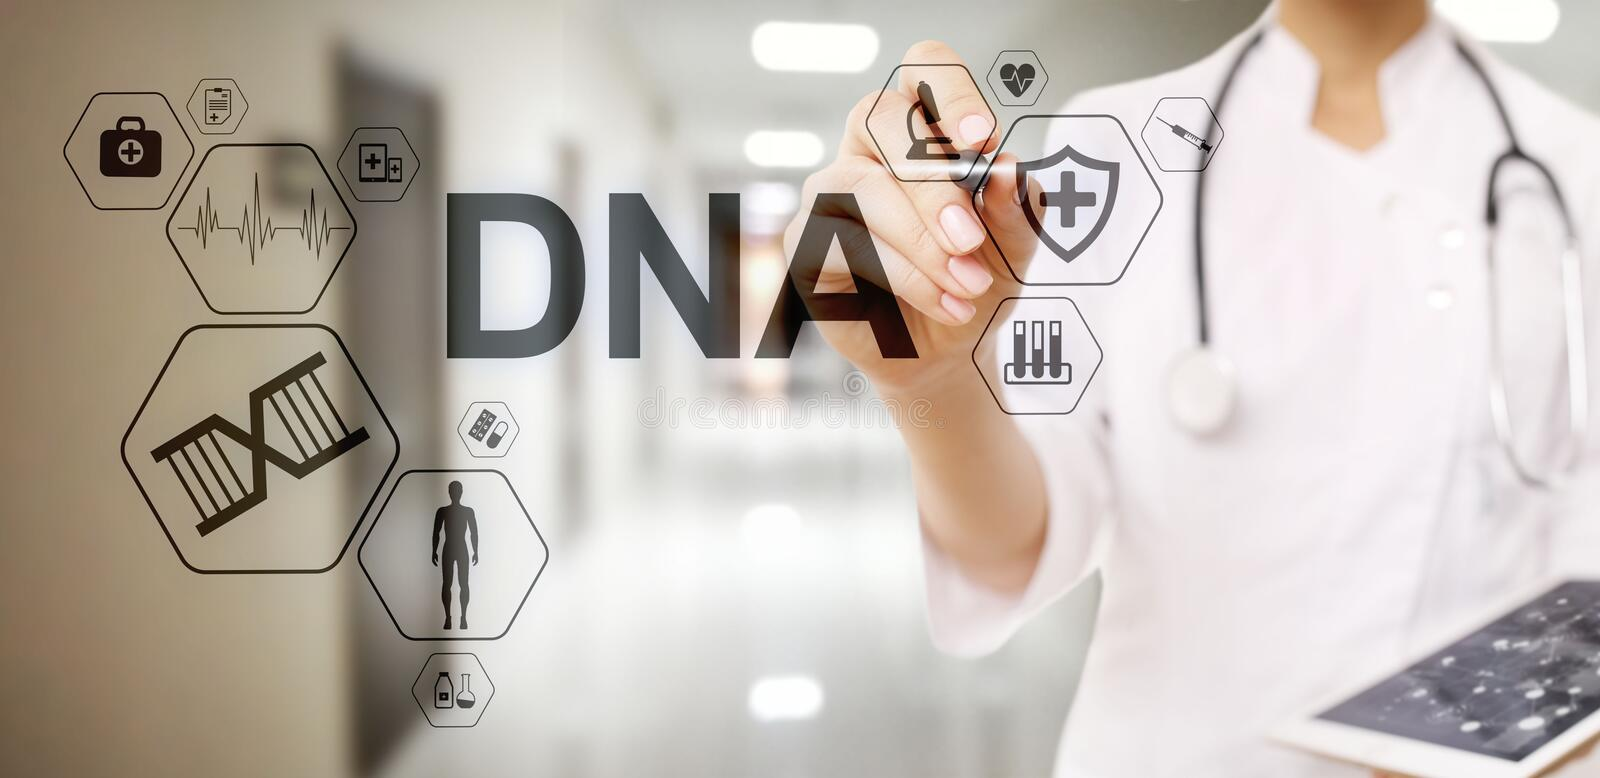 DNA deoxyribonucleic acid. Medical Healthcare Science concept on screen. royalty free illustration